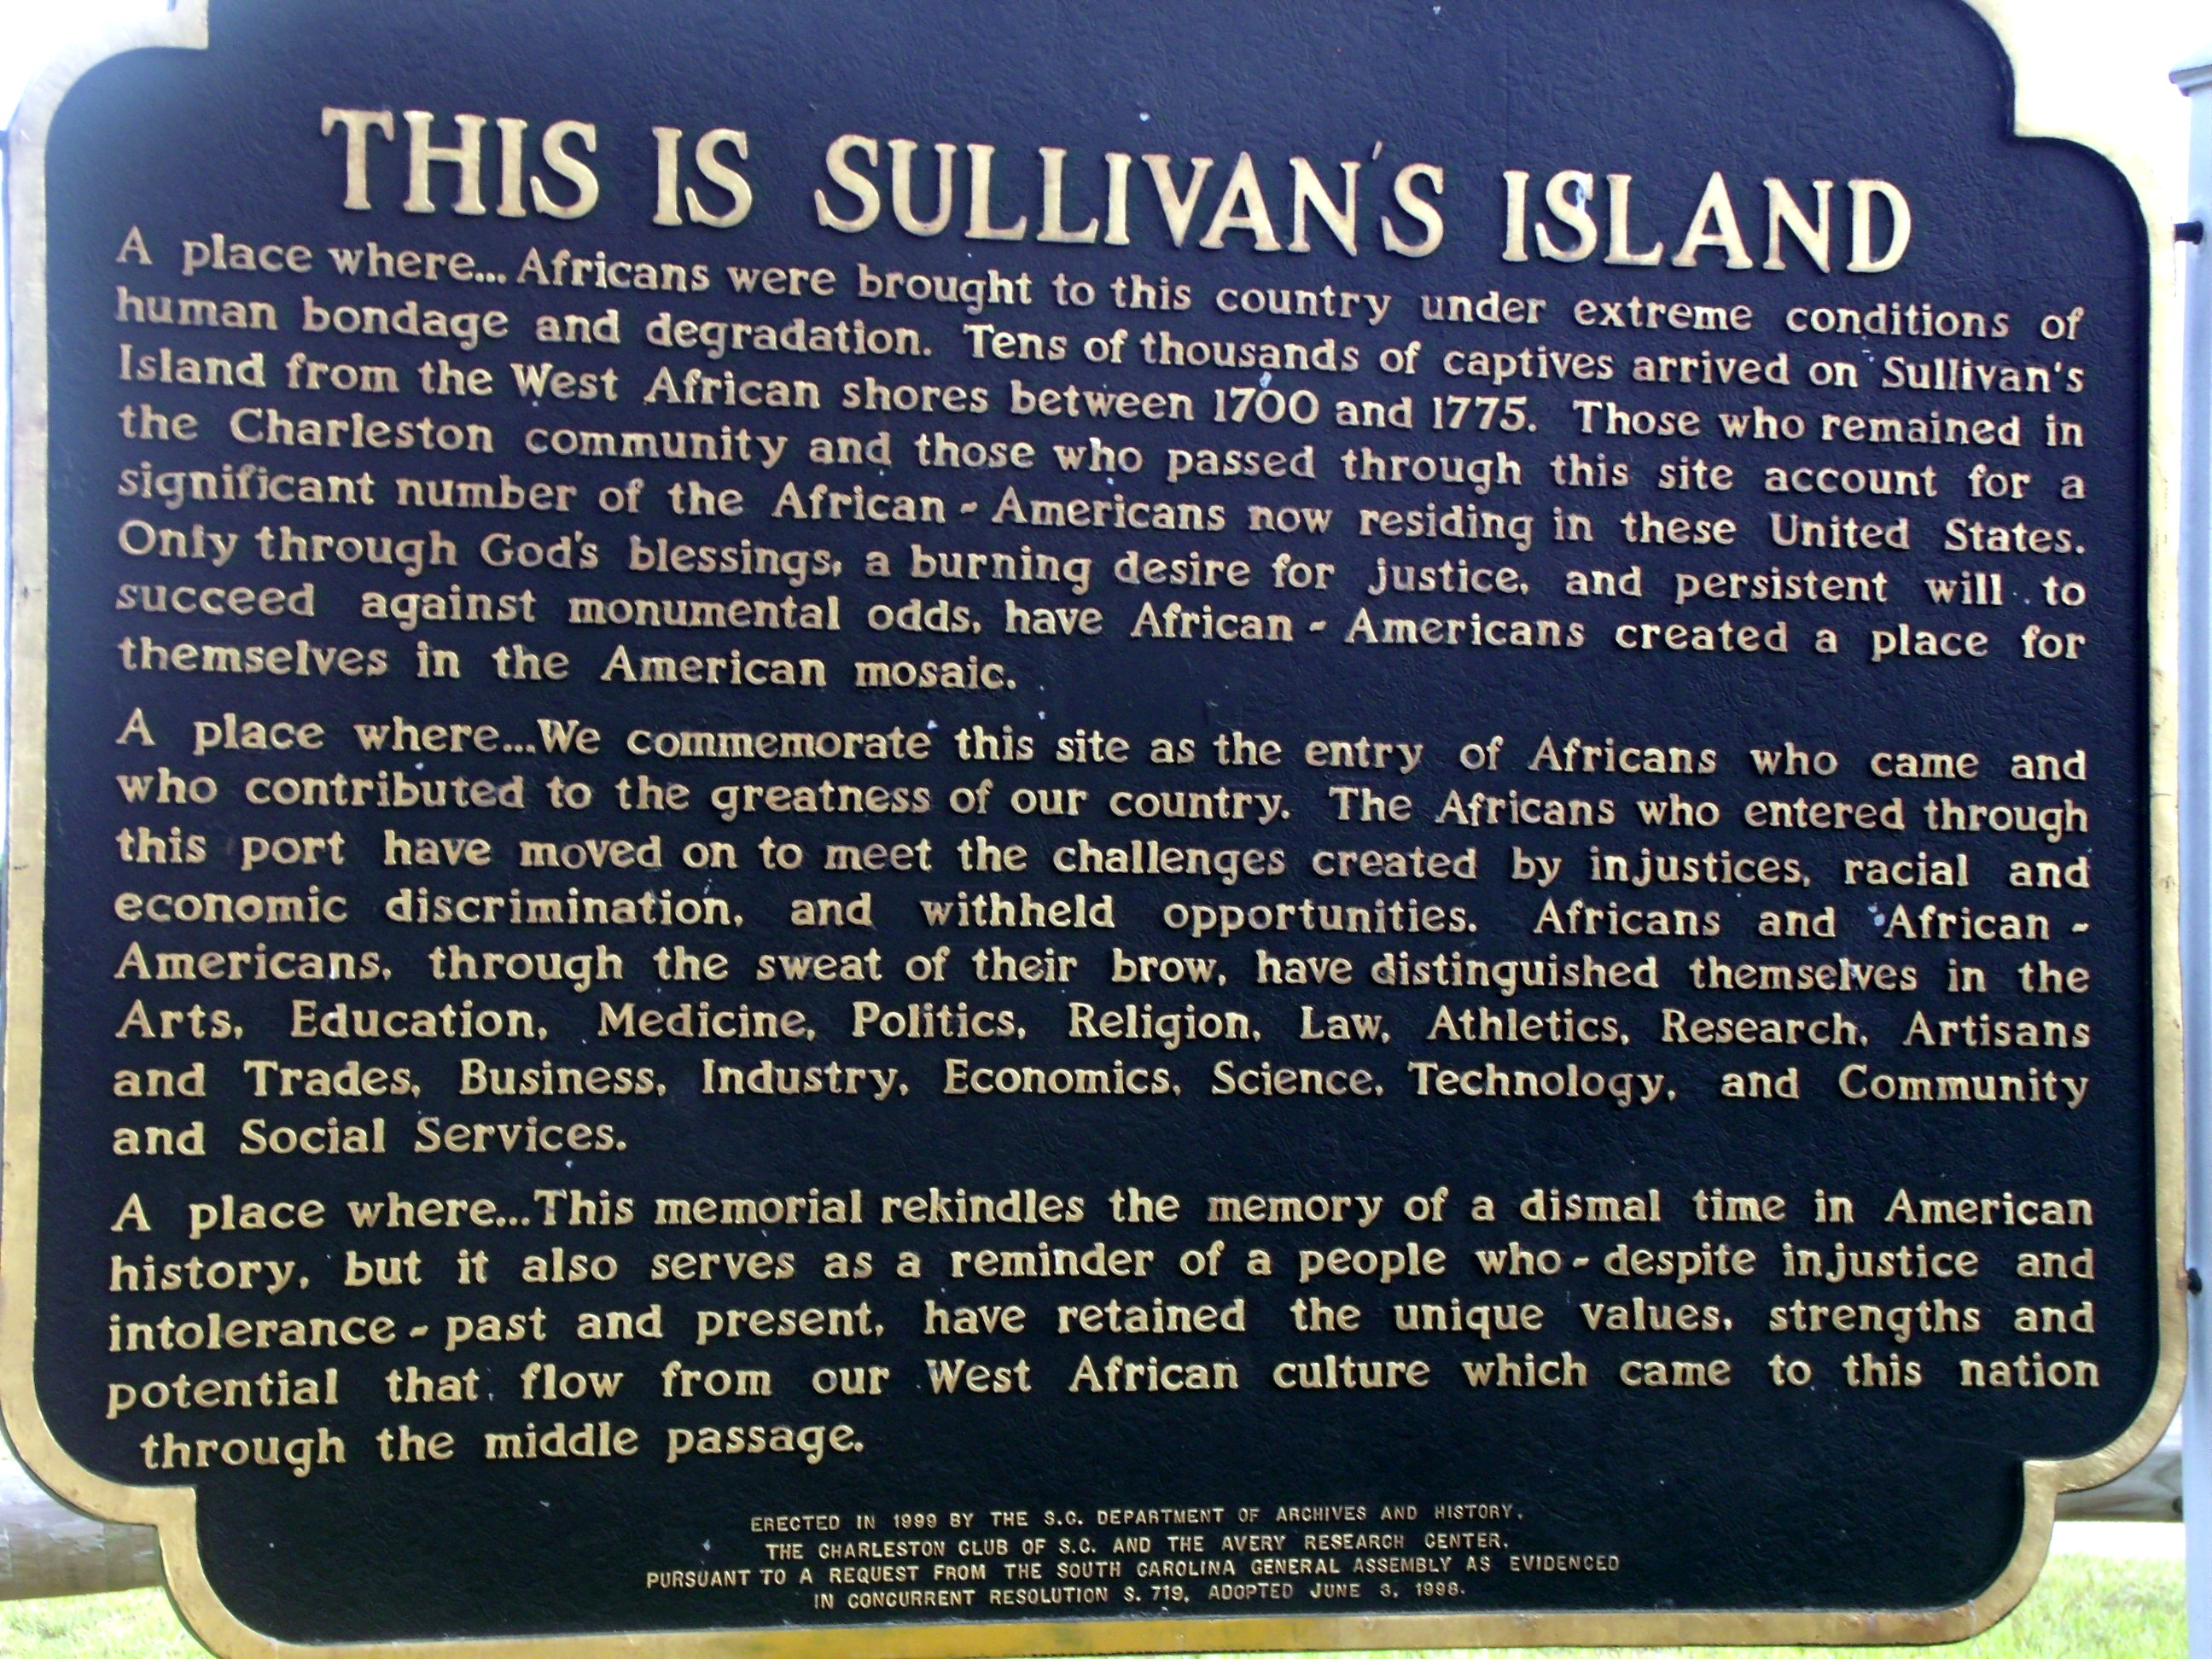 sullivans island black girls personals Document7_2nd08rd uploaded by pcnhs sal related  4:30 gilligan's island 5 pm news 5:30  (caught in the spider's web with tallulah bankhead as the black.